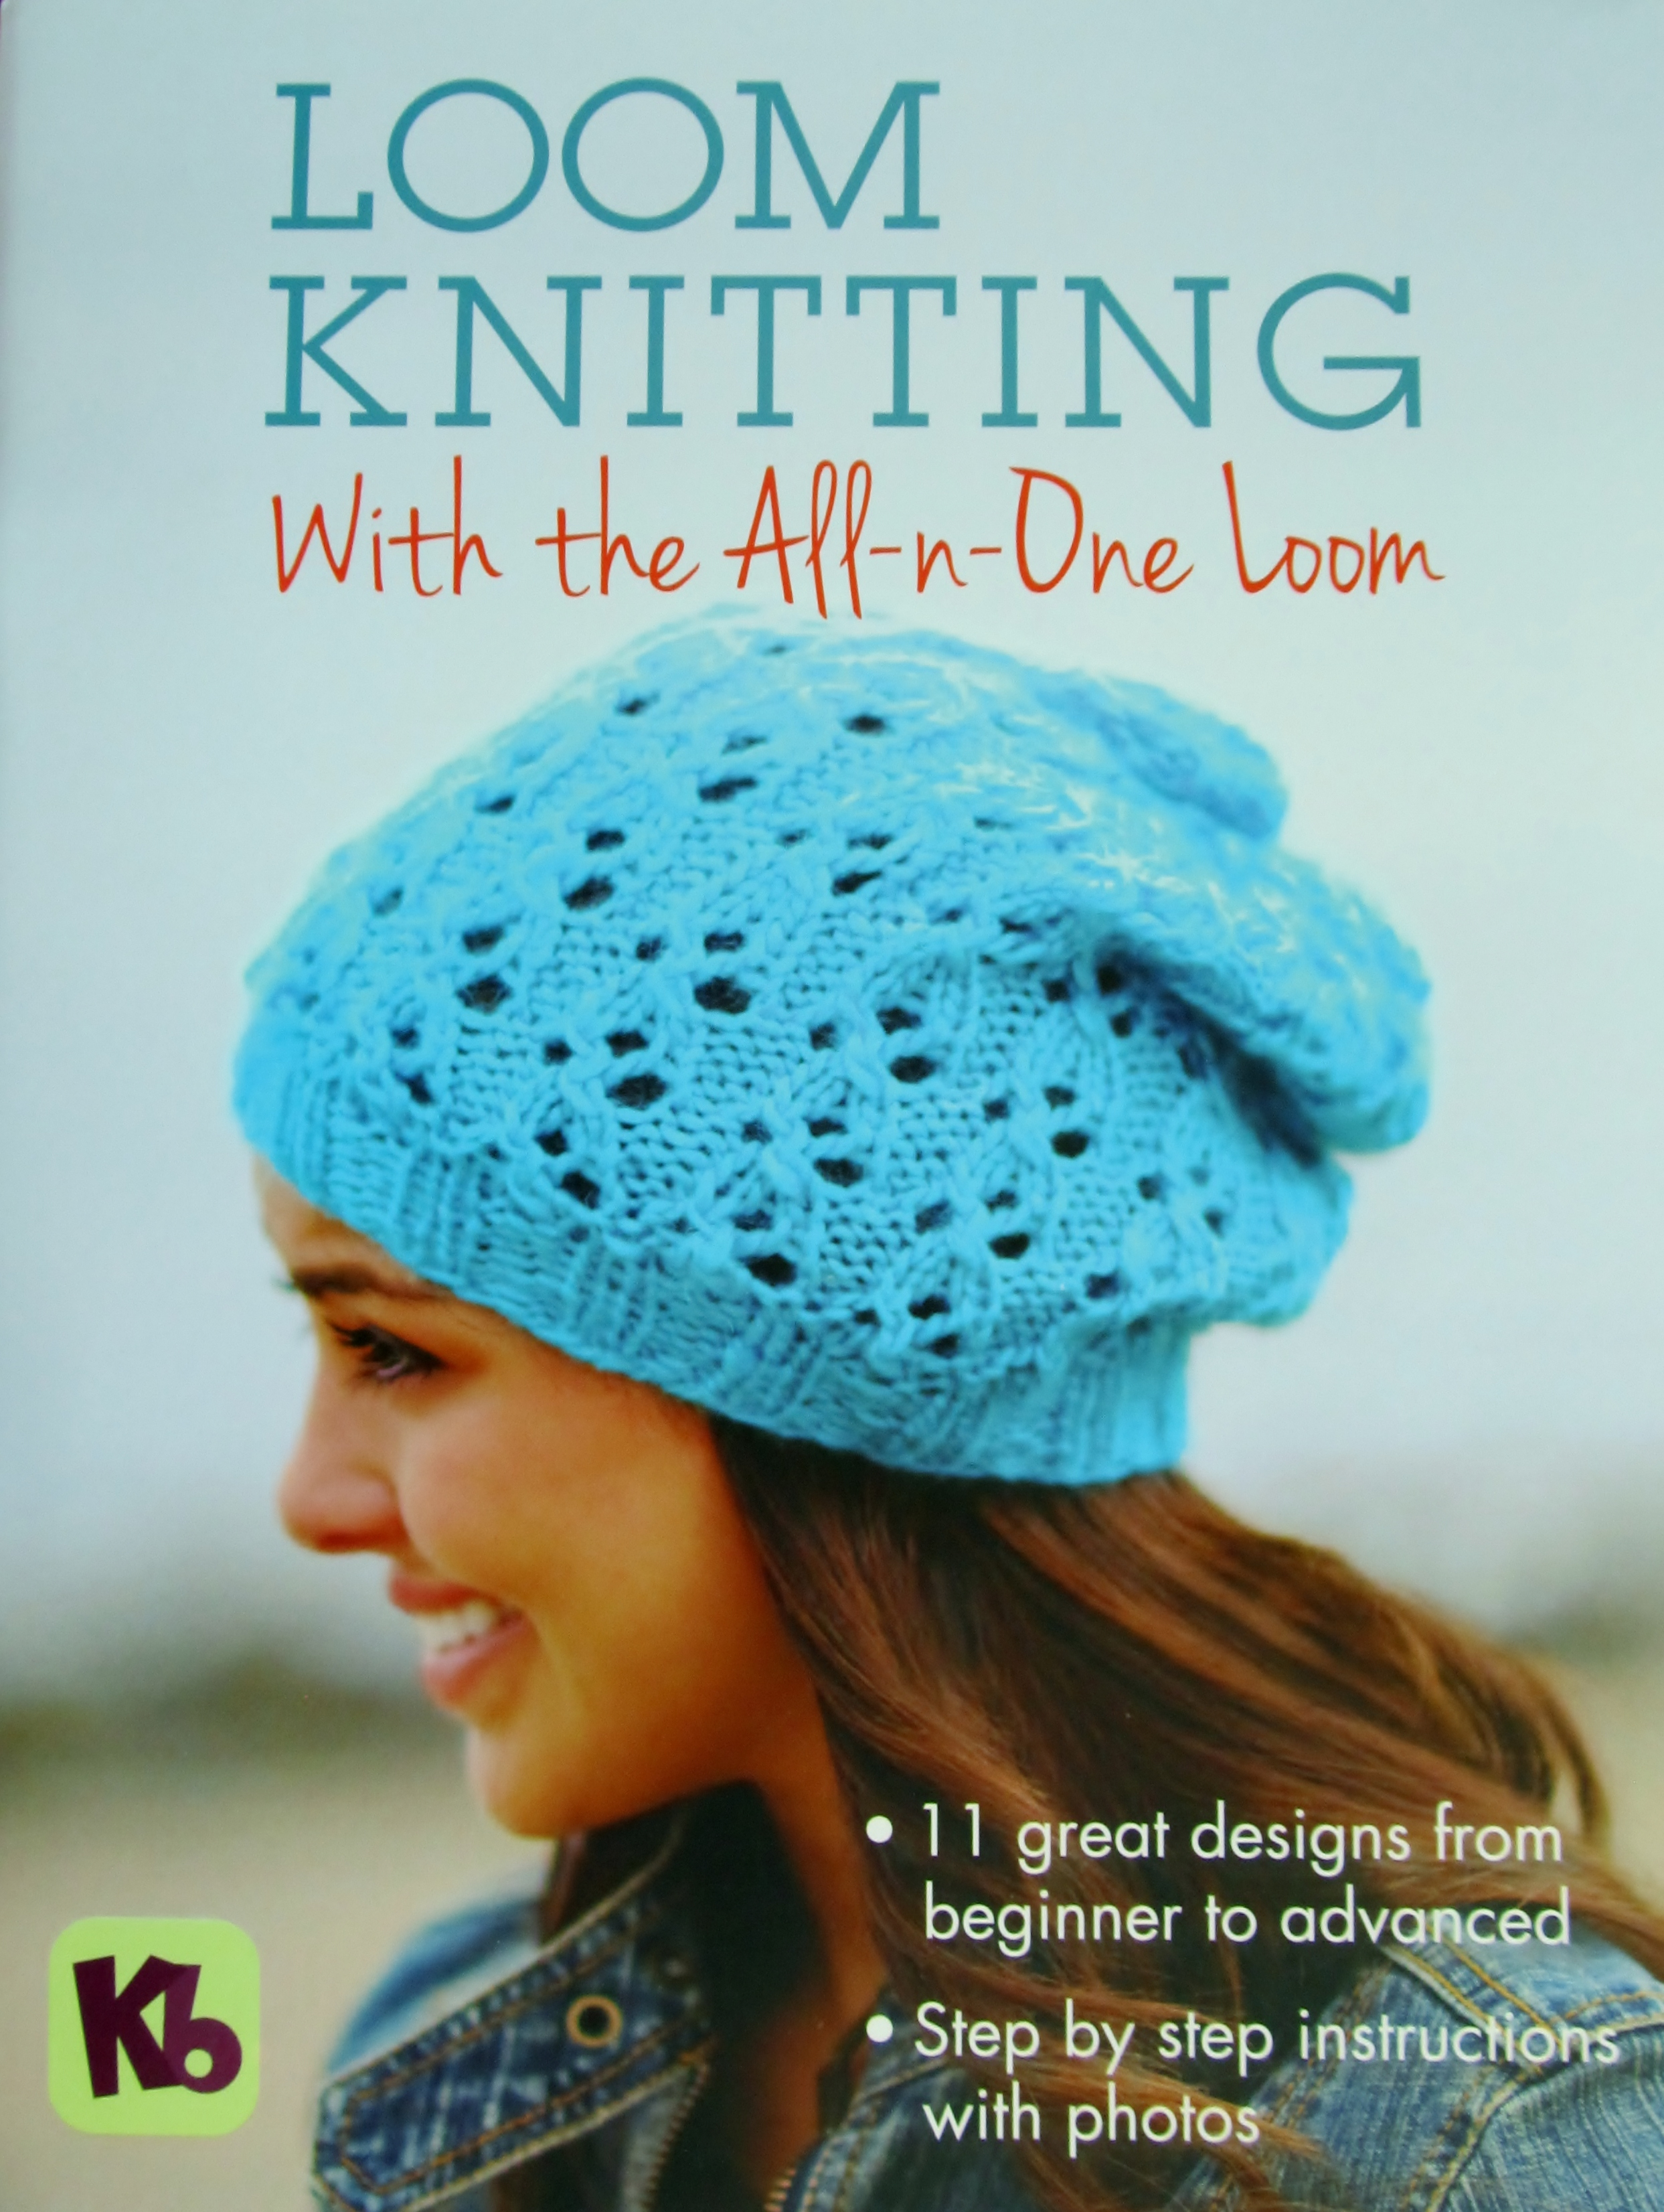 Knitting Stitches Book : Loom Knitting with the All-n-One book Guppygirl